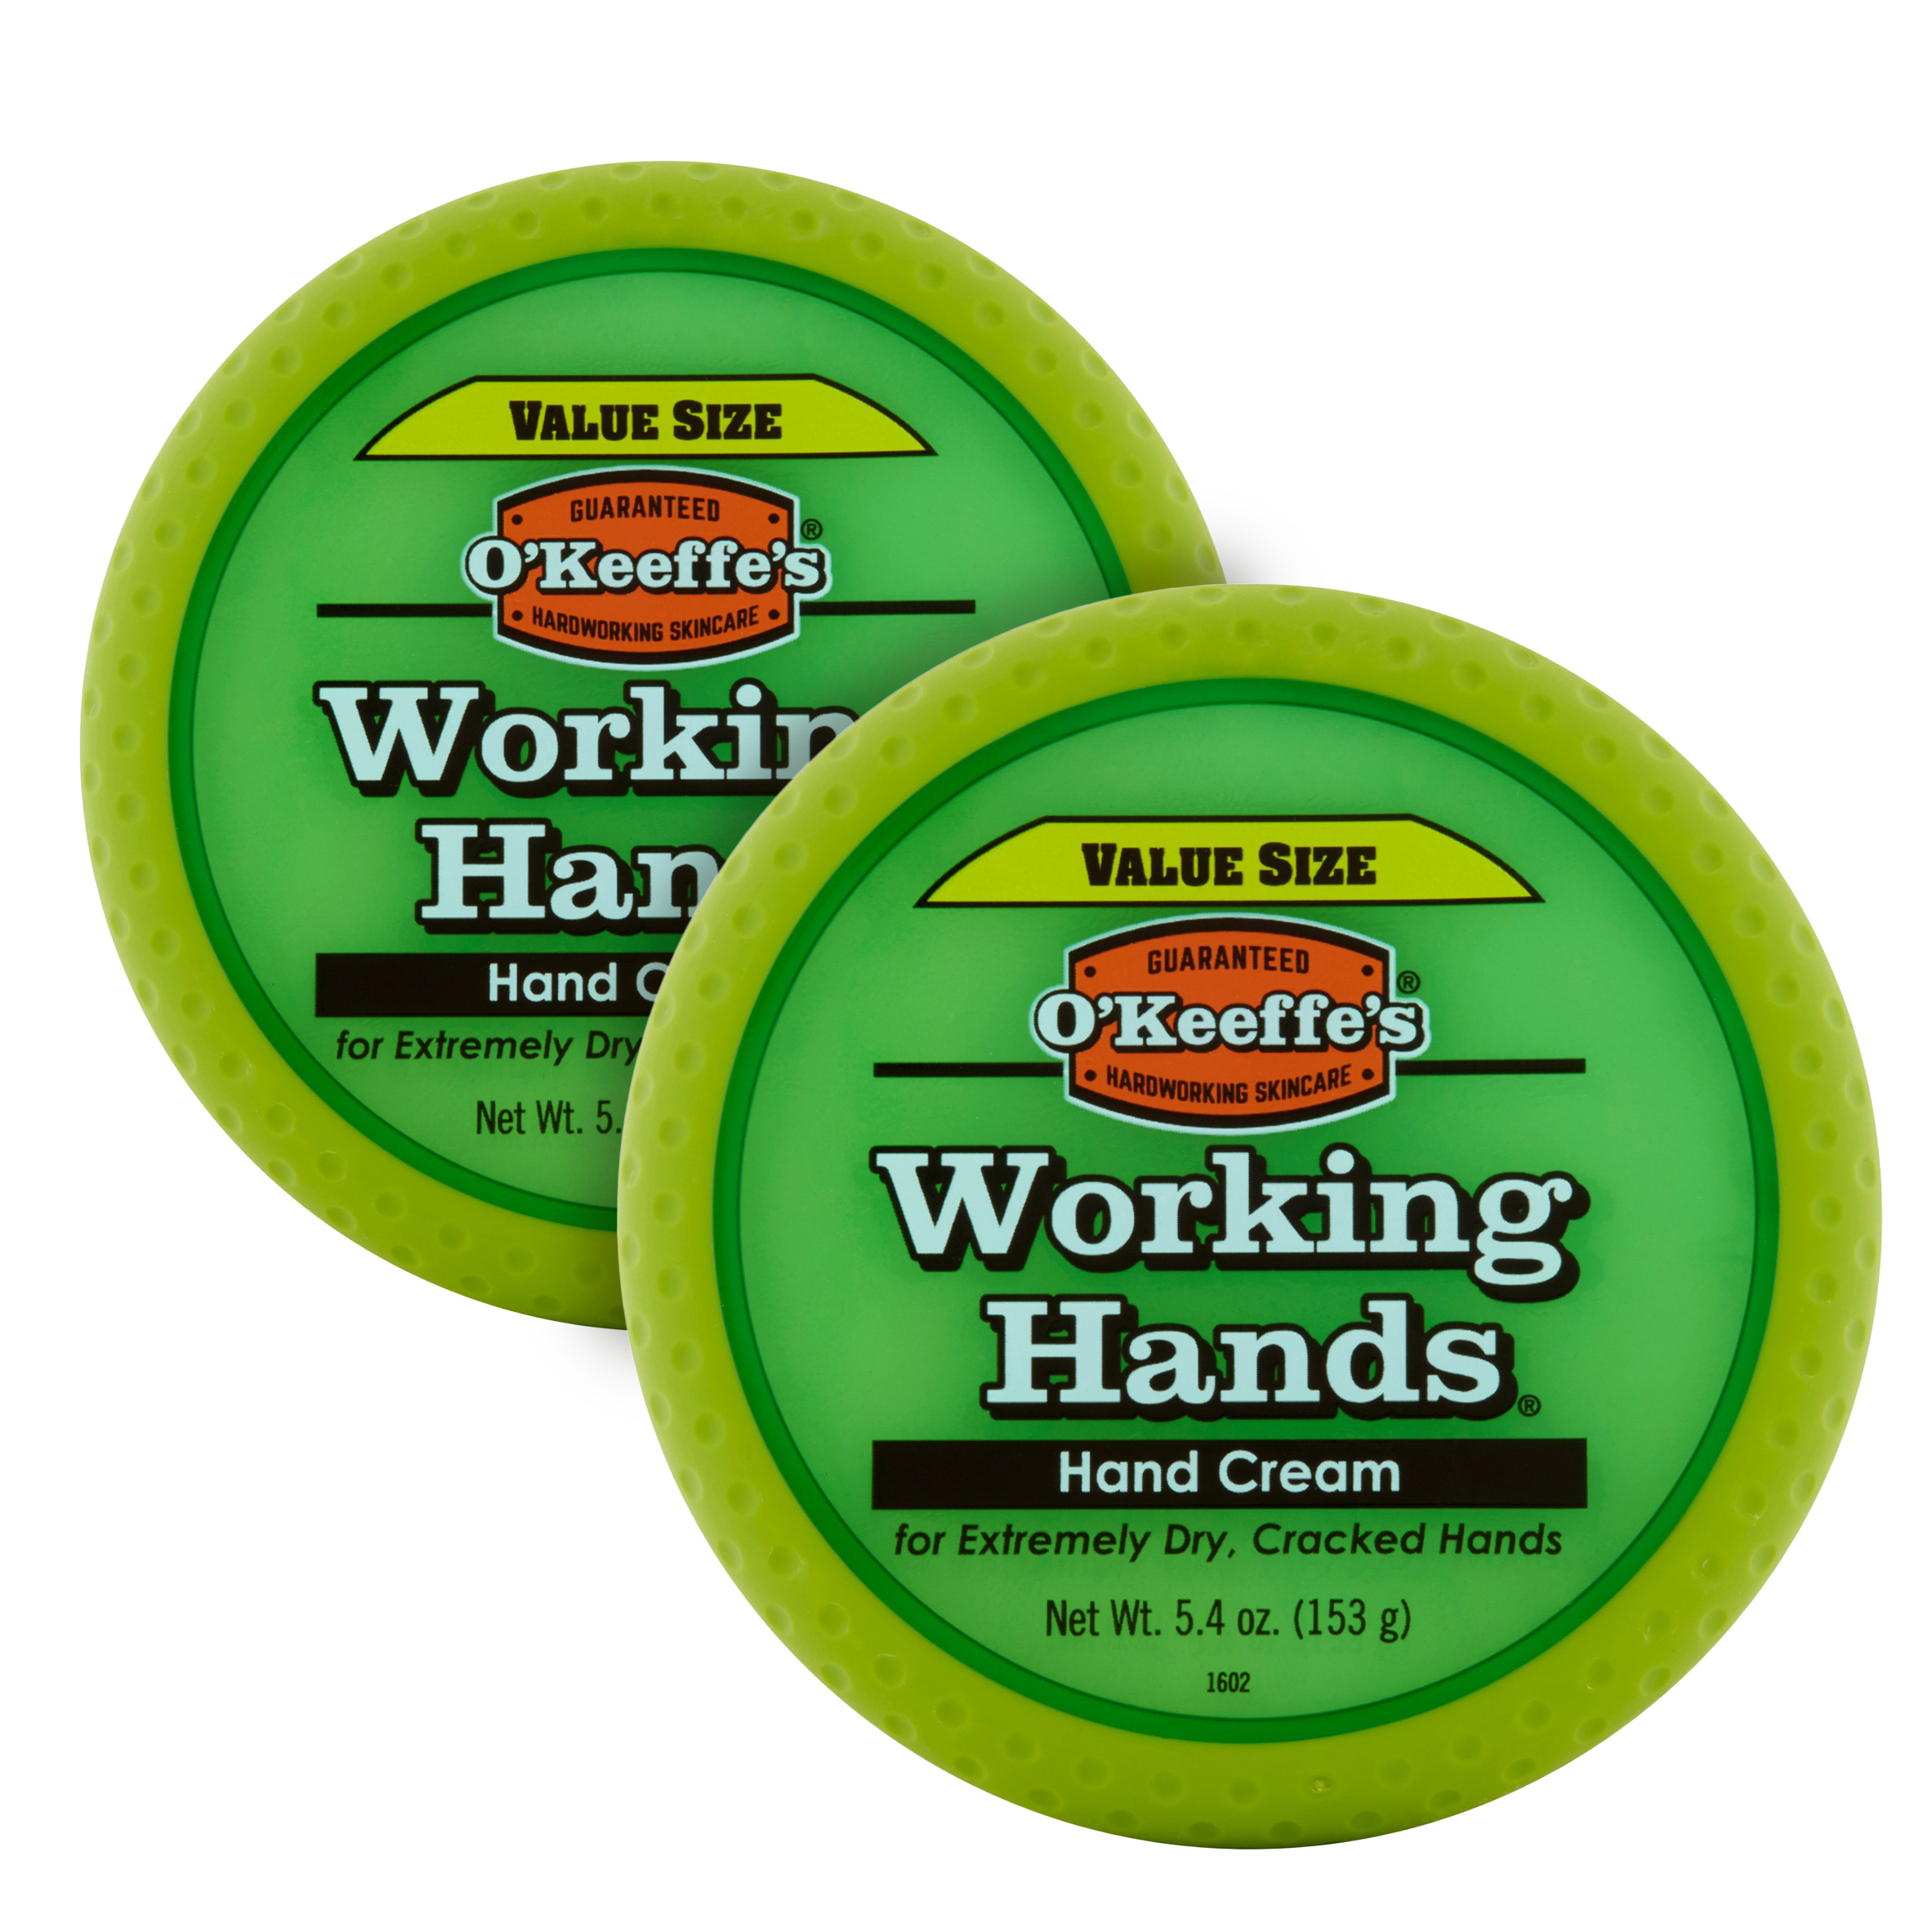 2 pack 5.4 oz. Jar O'Keeffe's Working Hands Hand Cream